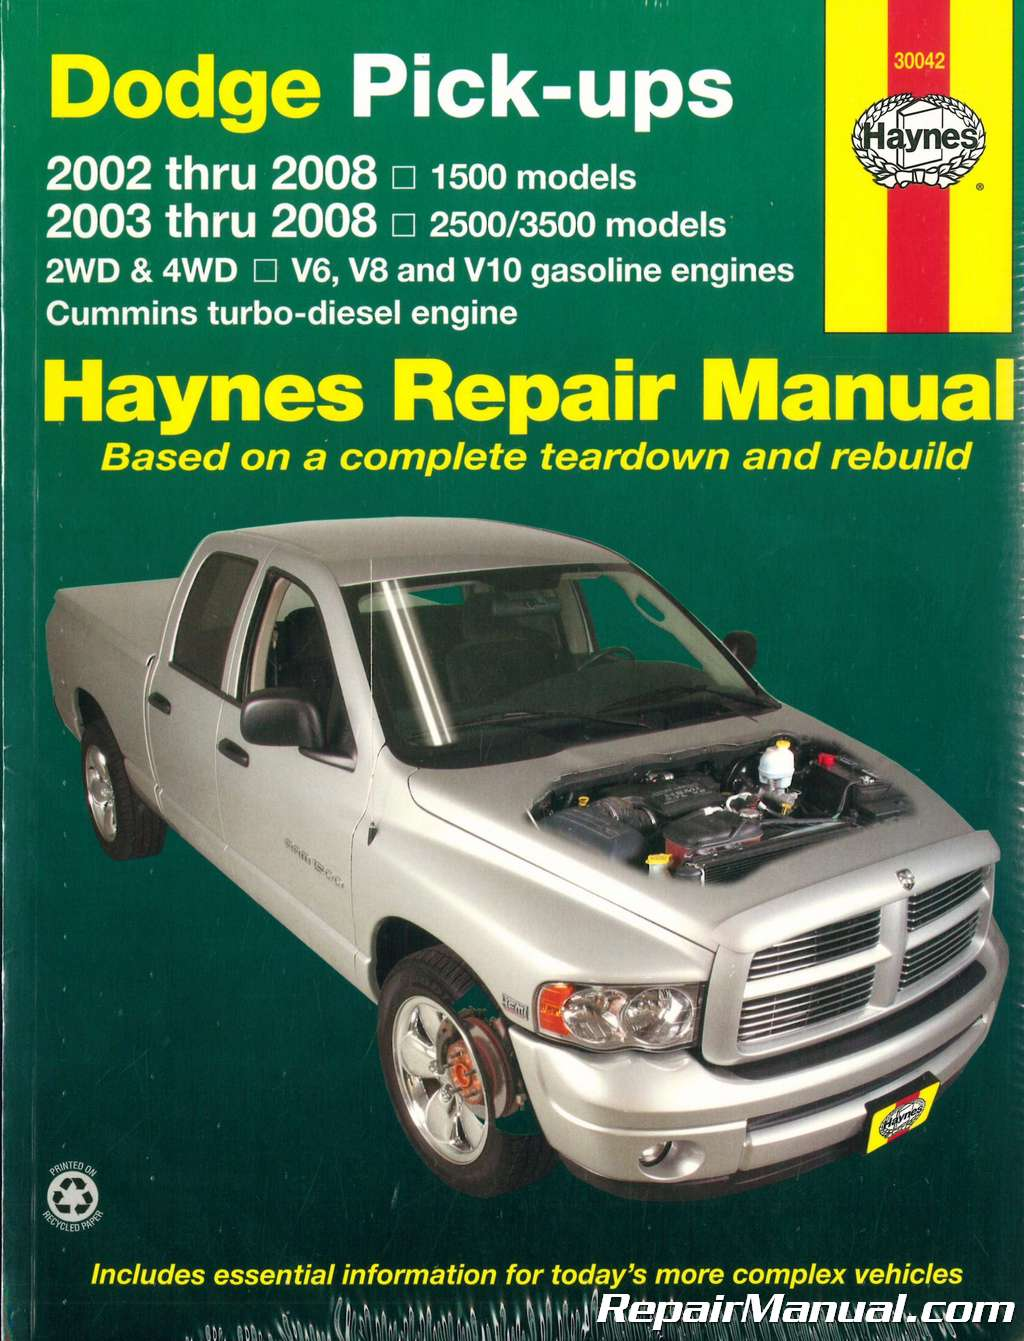 2003 dodge ram 1500 4.7 service manual